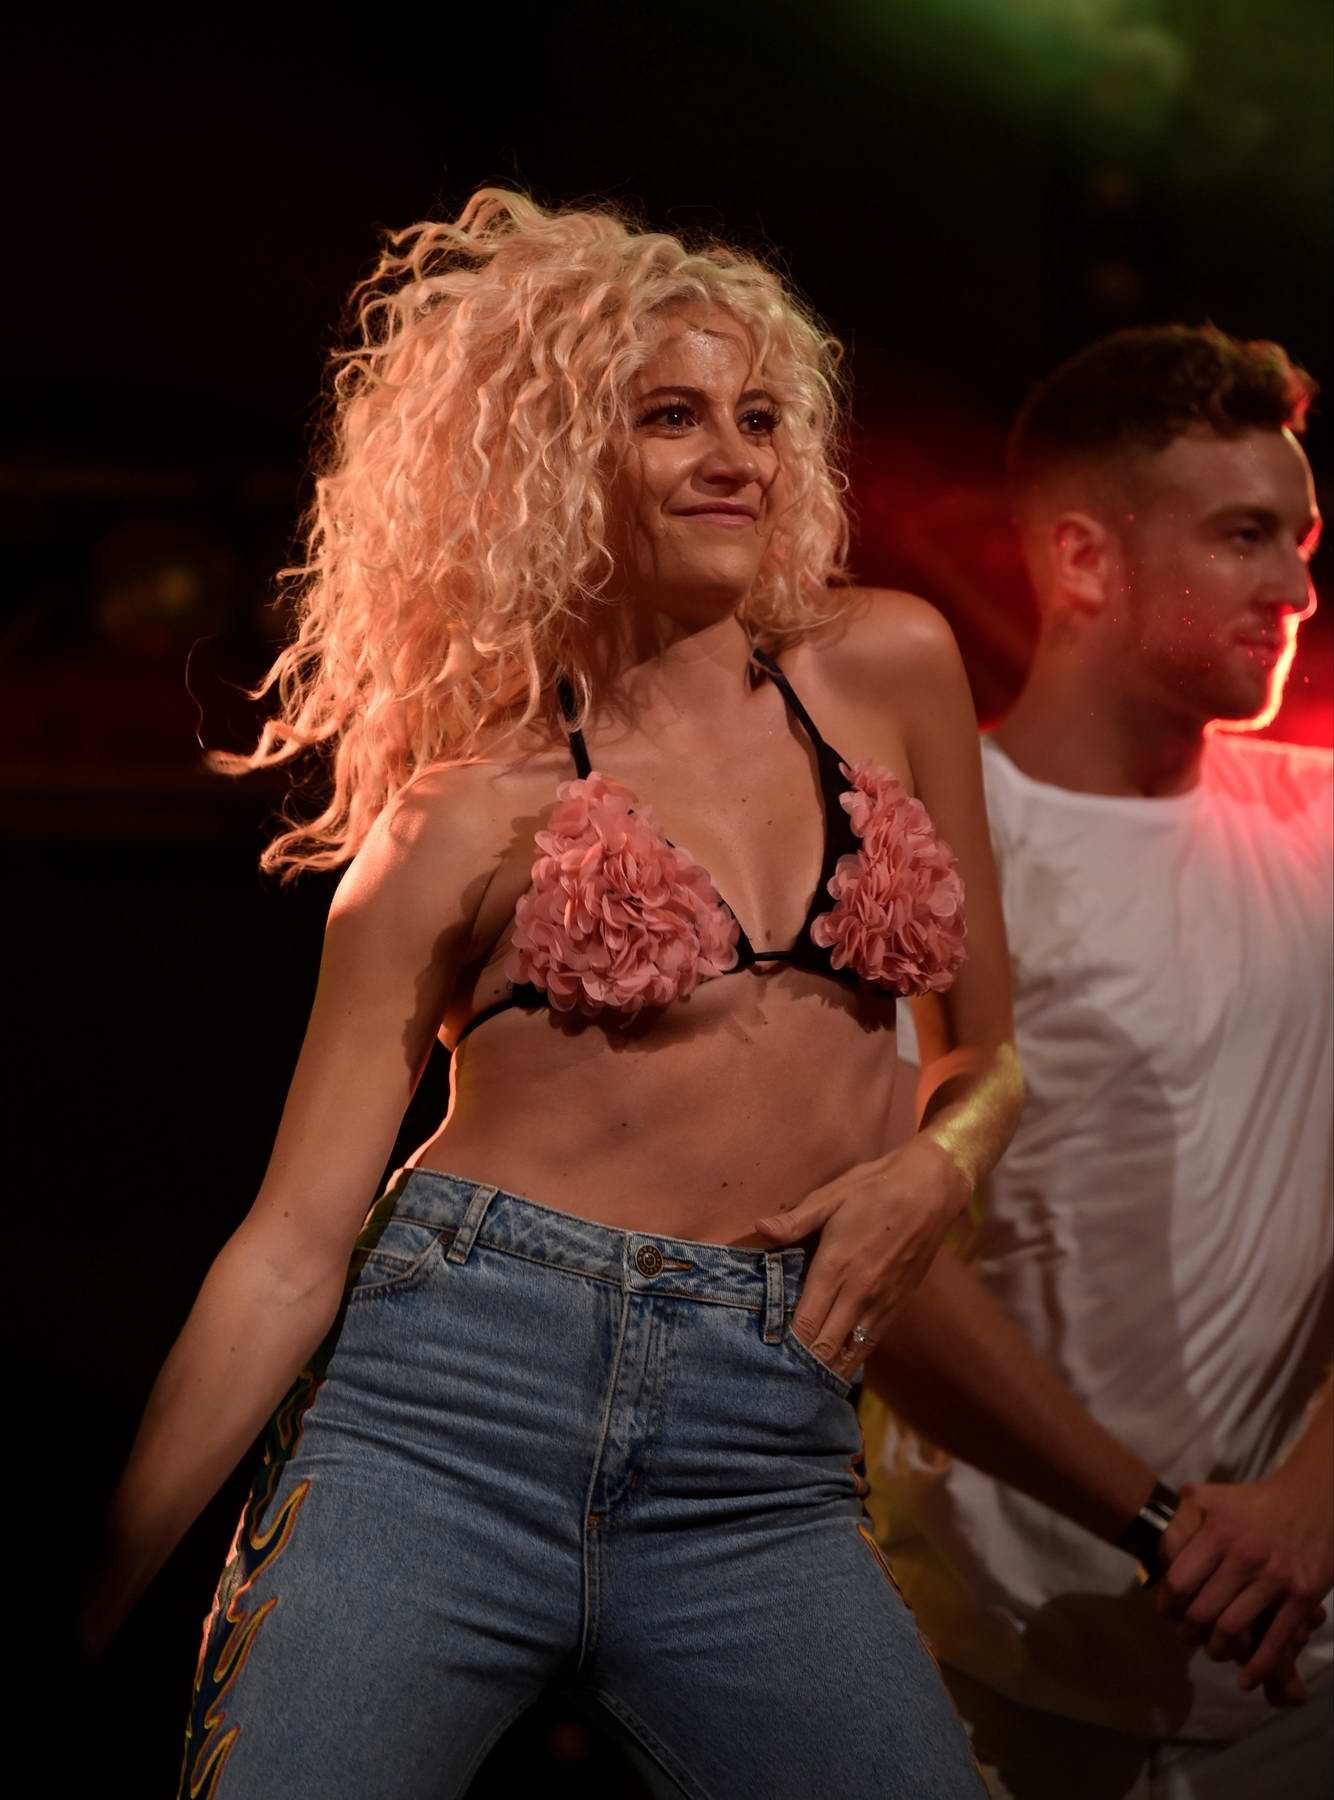 Pixie Lott performing at Manchester Pride in Manchester, UK